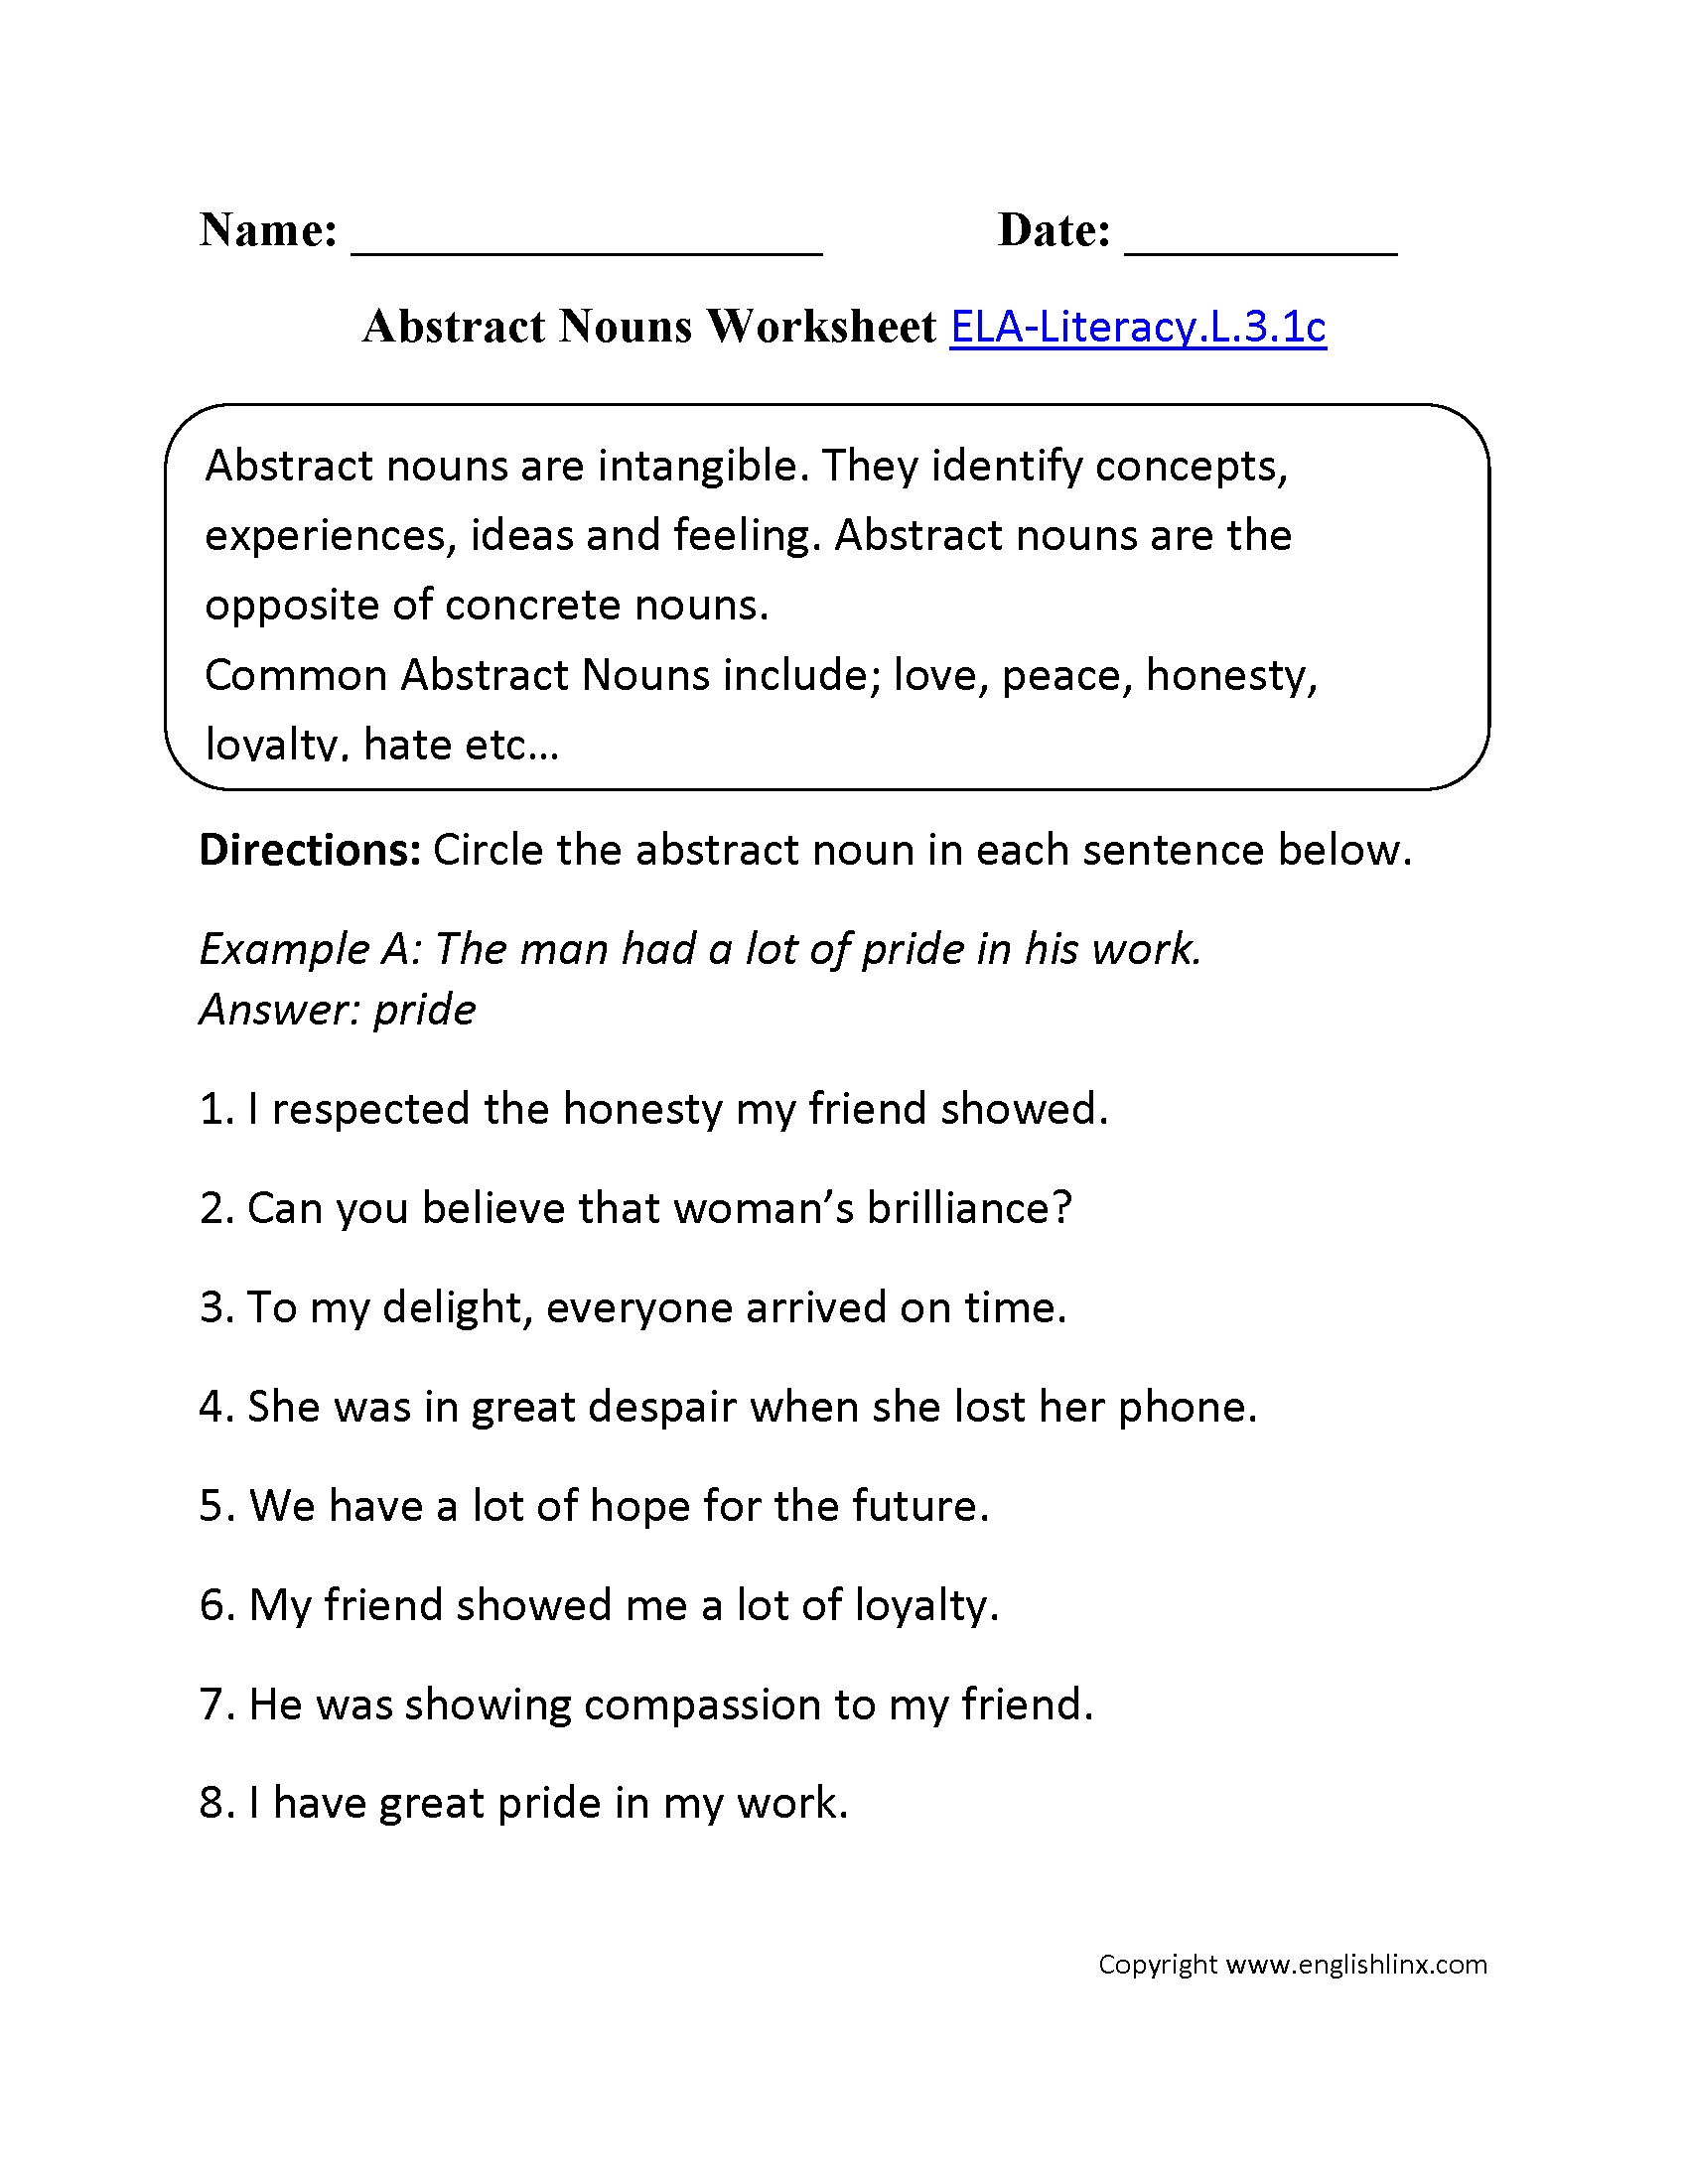 Worksheets 8th Grade Language Arts Worksheets writing compound sentences worksheet englishlinx com board worksheet